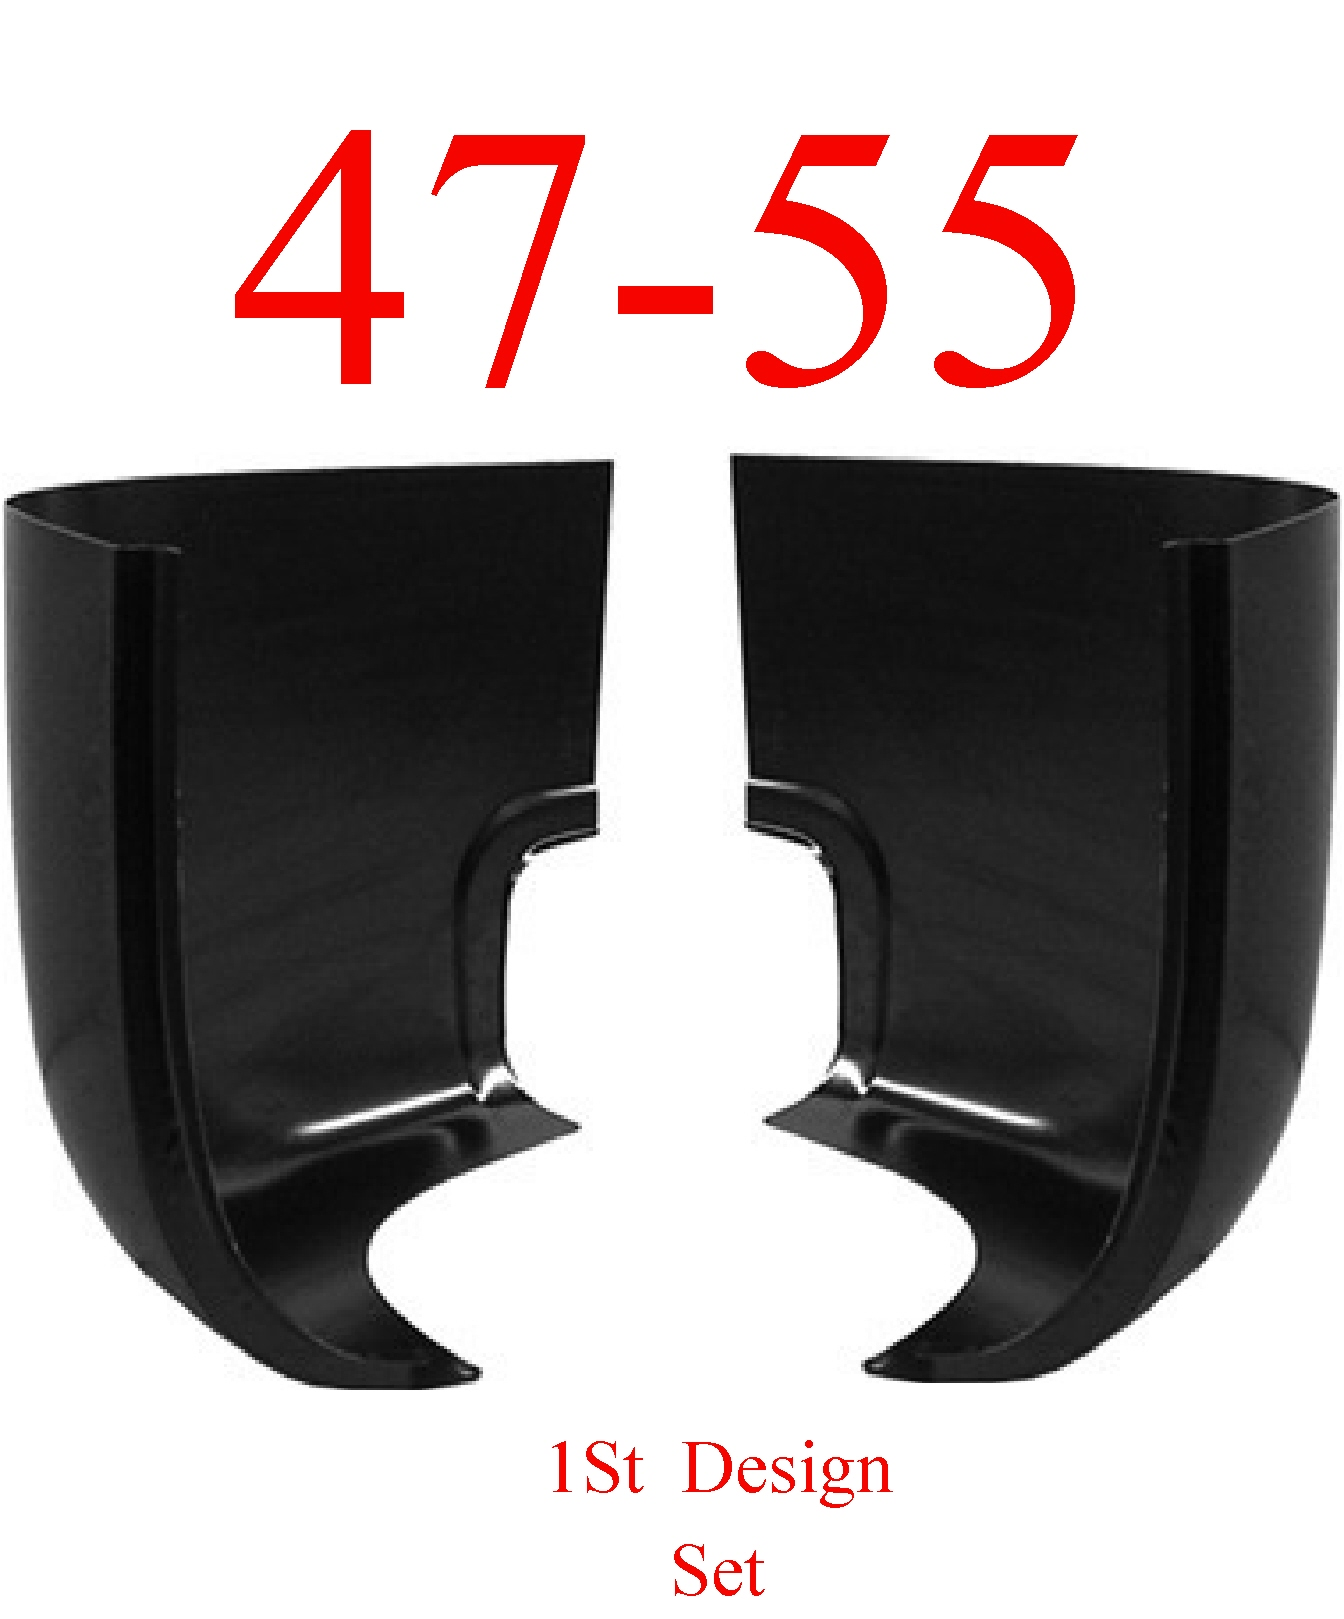 47-55 Chevy GMC Cab Corner Set, 1st Design